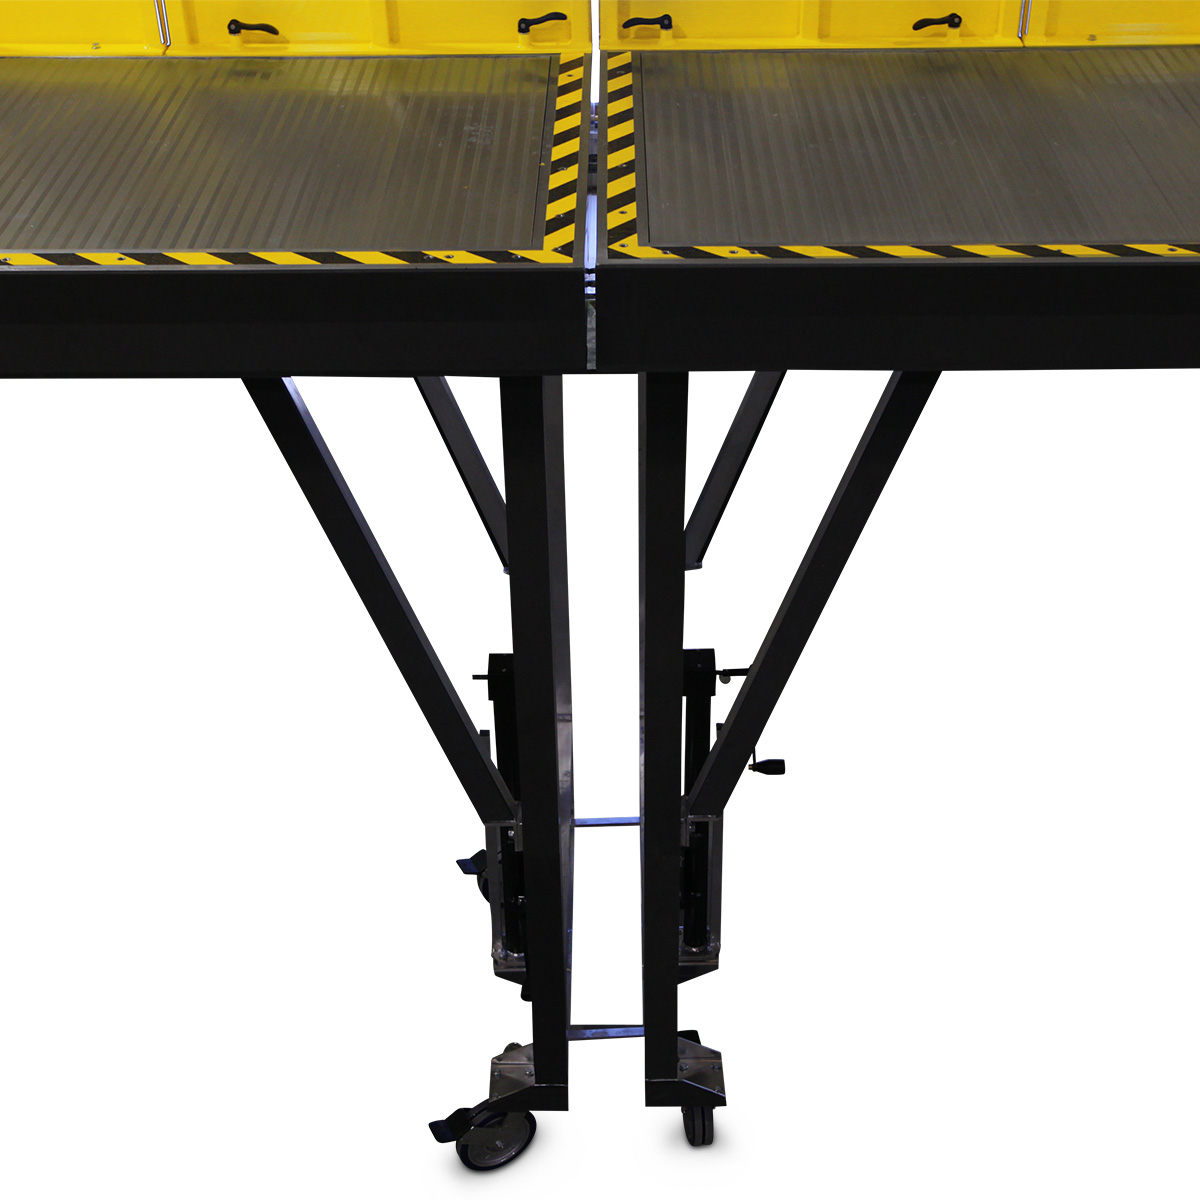 OSHA compliant, adjustable height mobile work stand with protective foam on all leading edges and link bars for leveling work surfaces while on uneven shop floors.